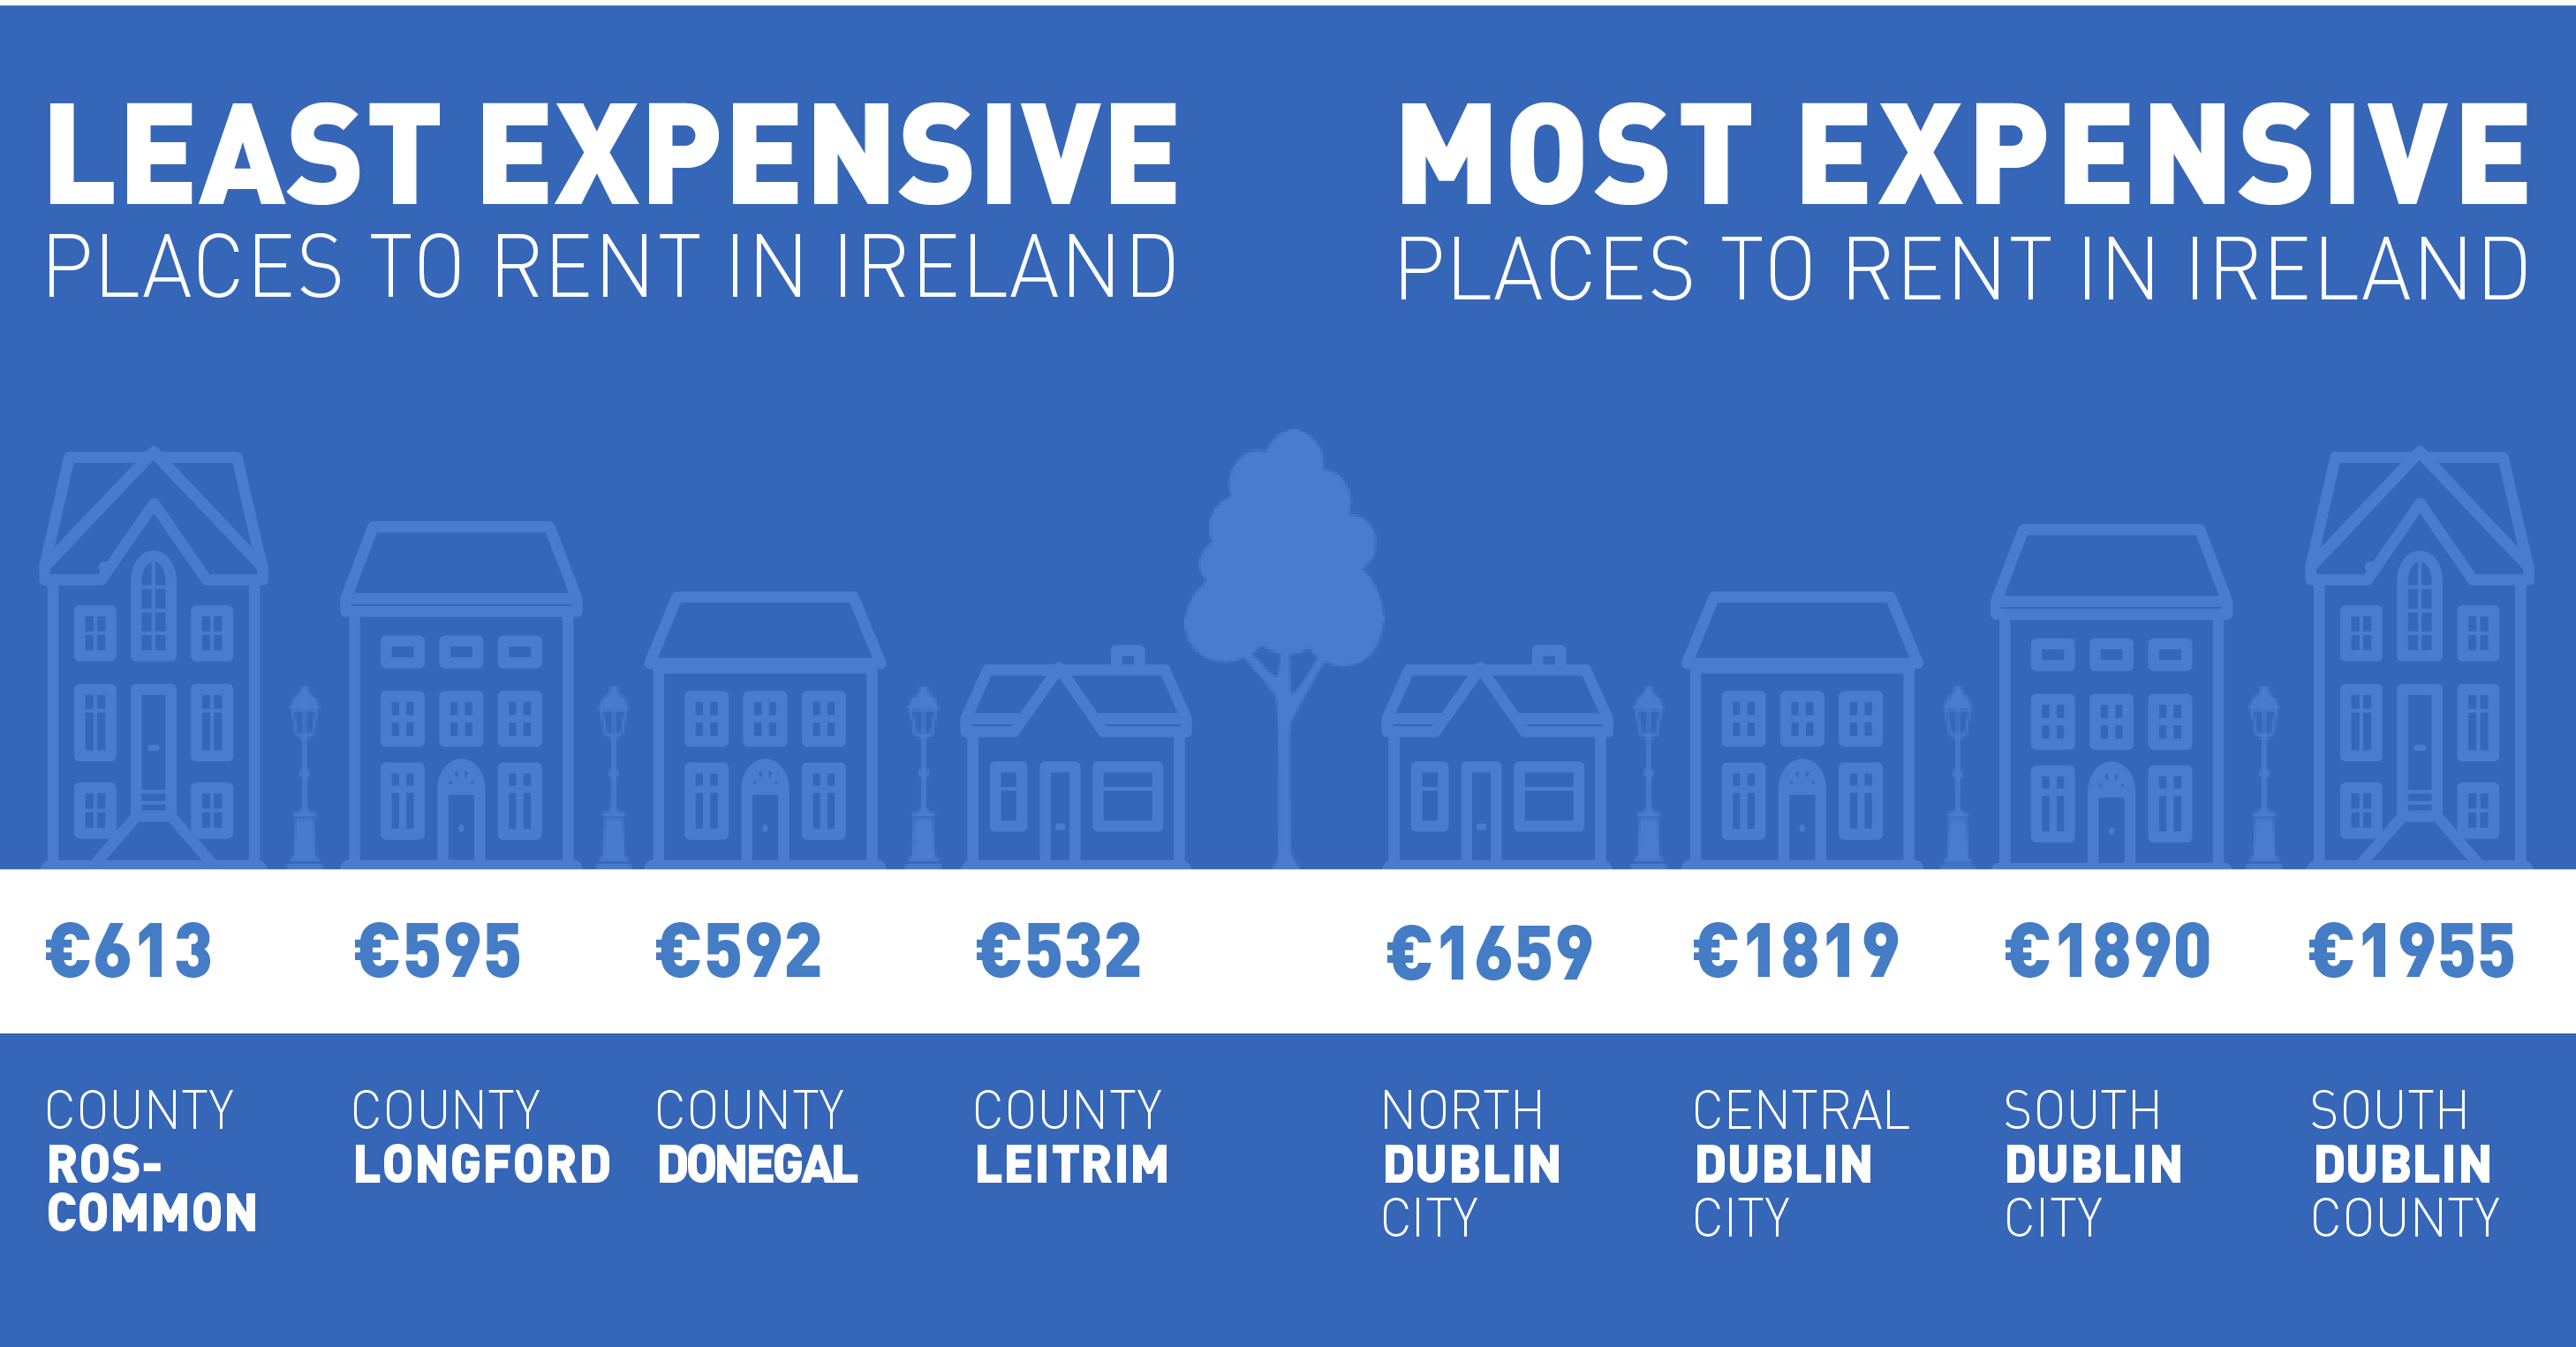 Least and most expensive places to rent in Ireland